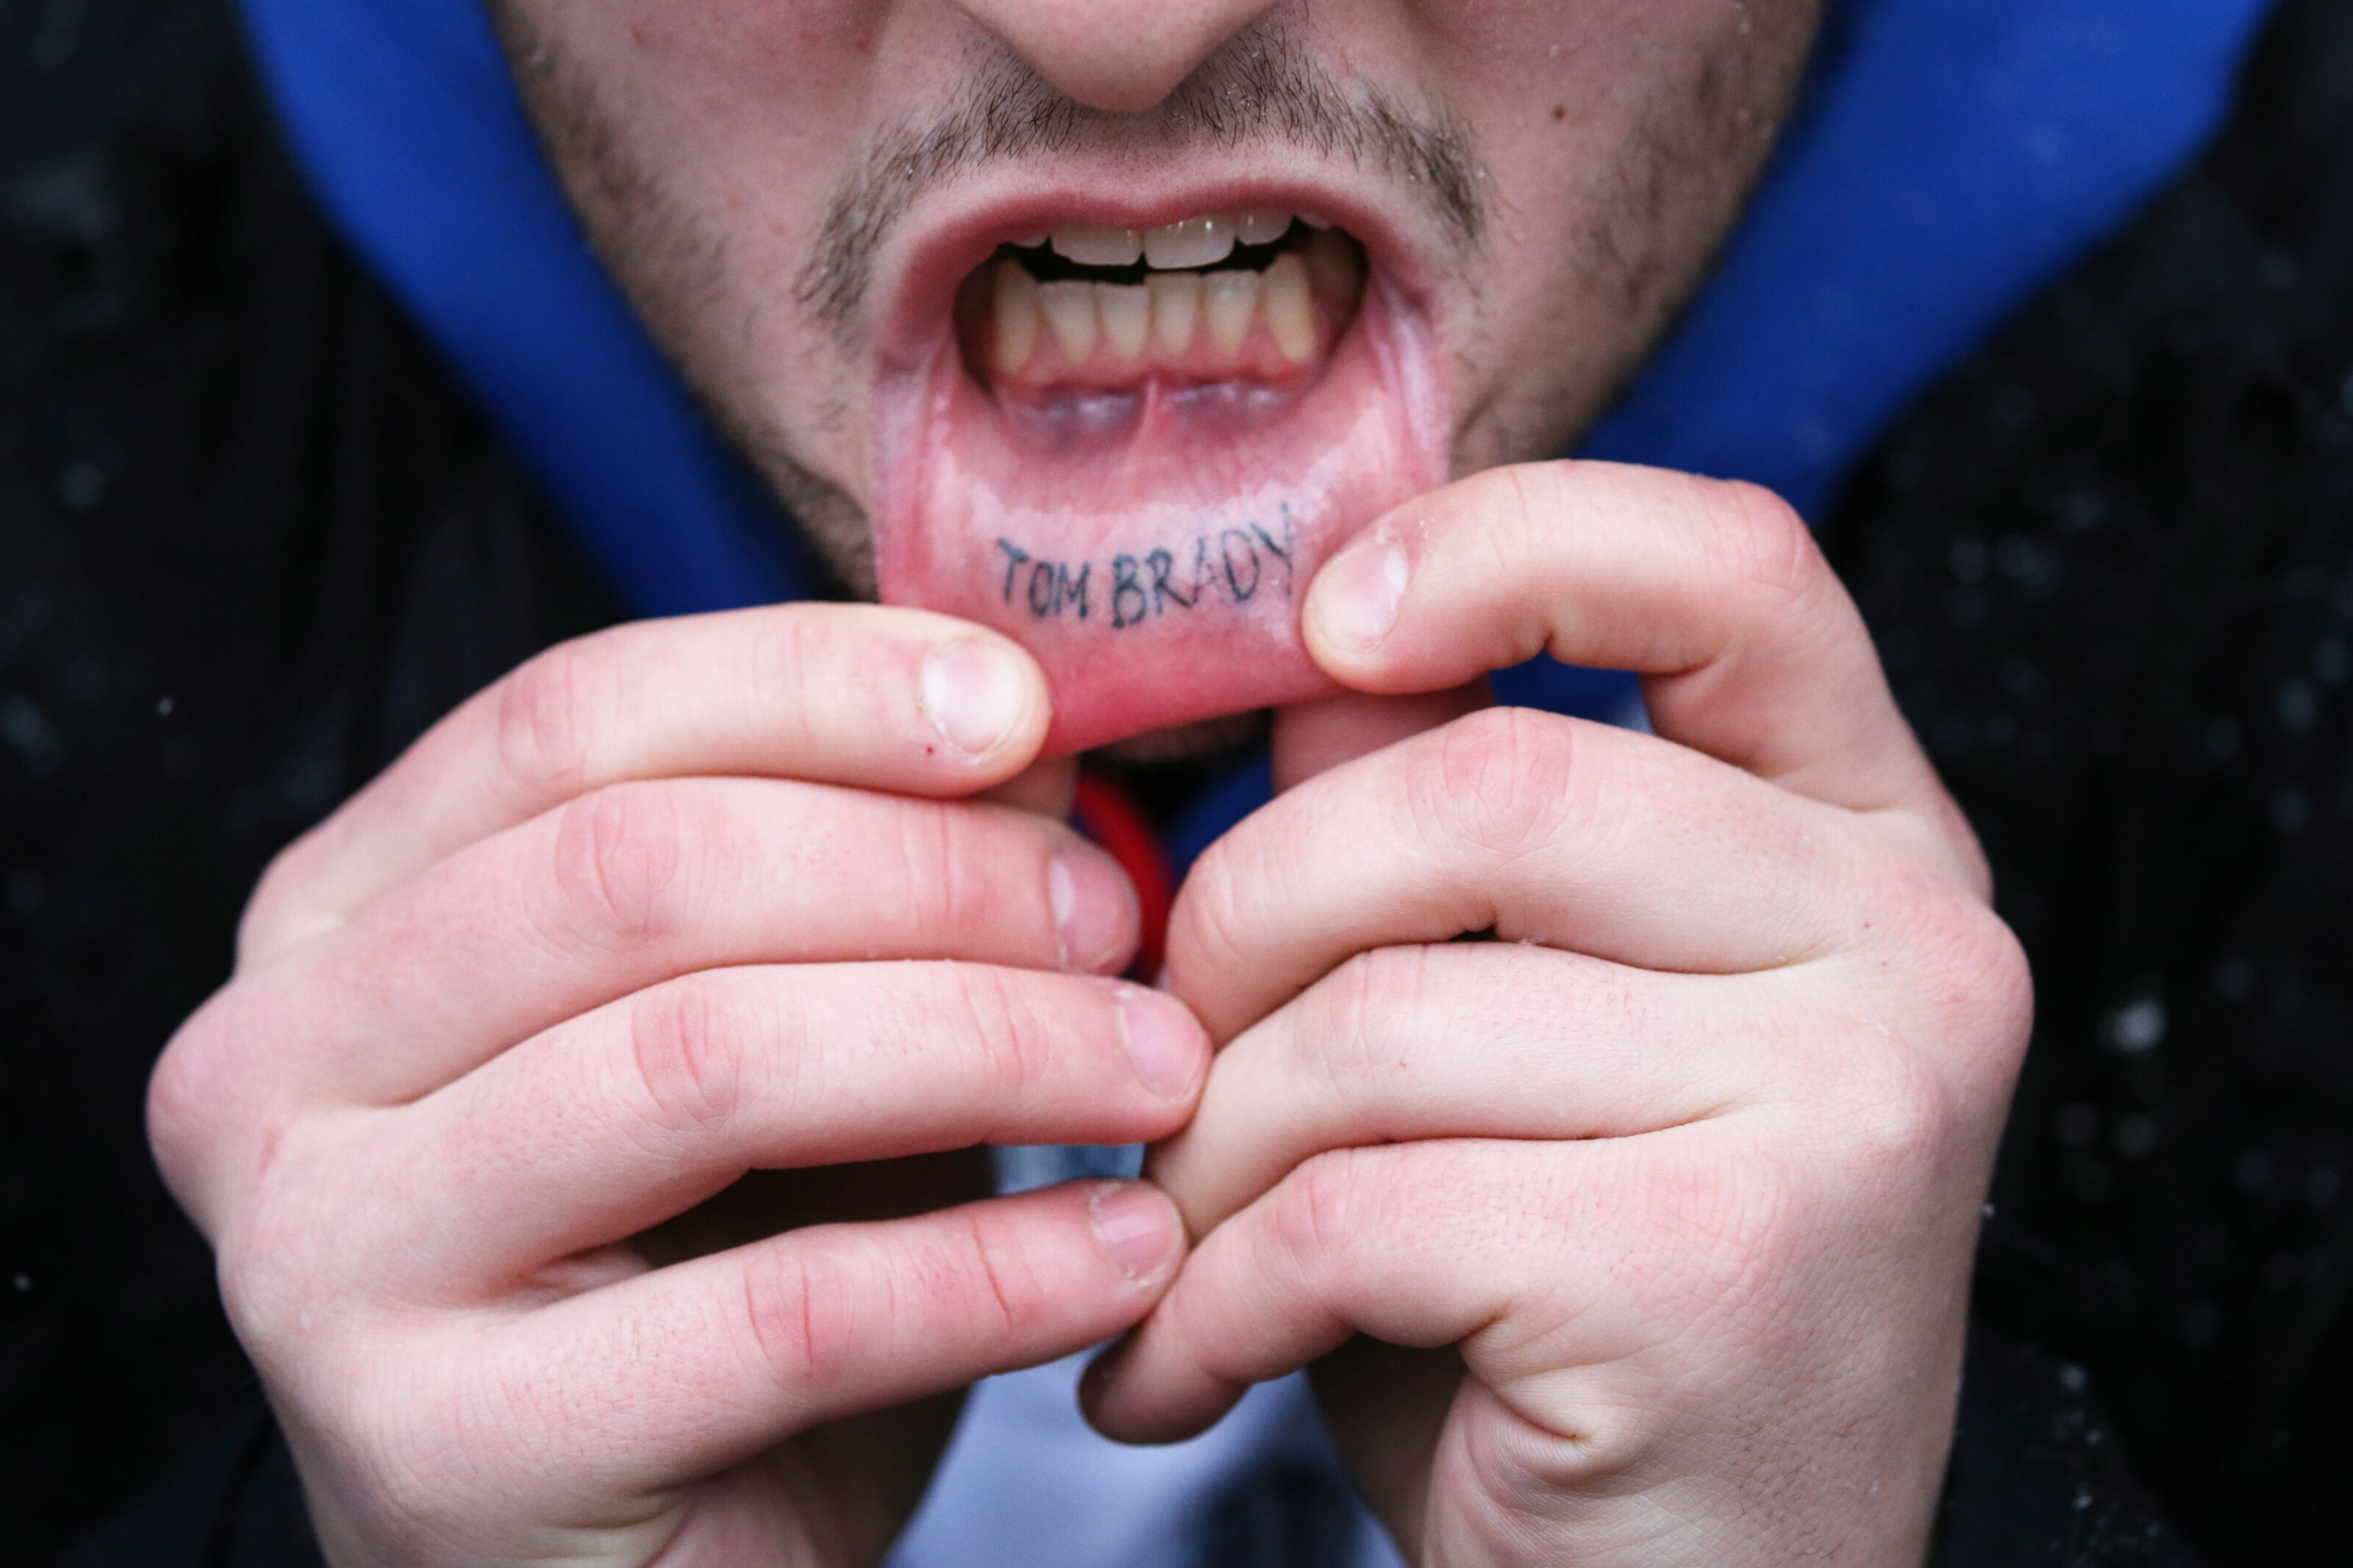 25 best, worst and most regrettable championship tattoos